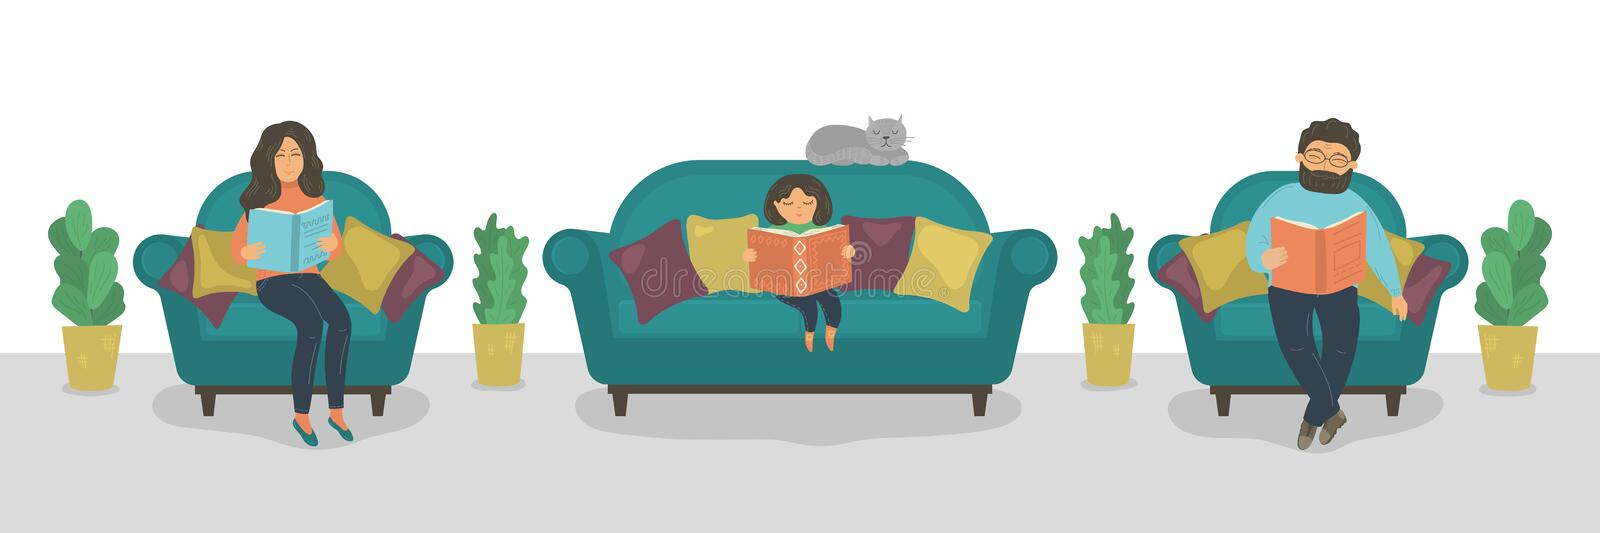 Family reading books. Mother, father and daughter reading books on sofa. vector illustration